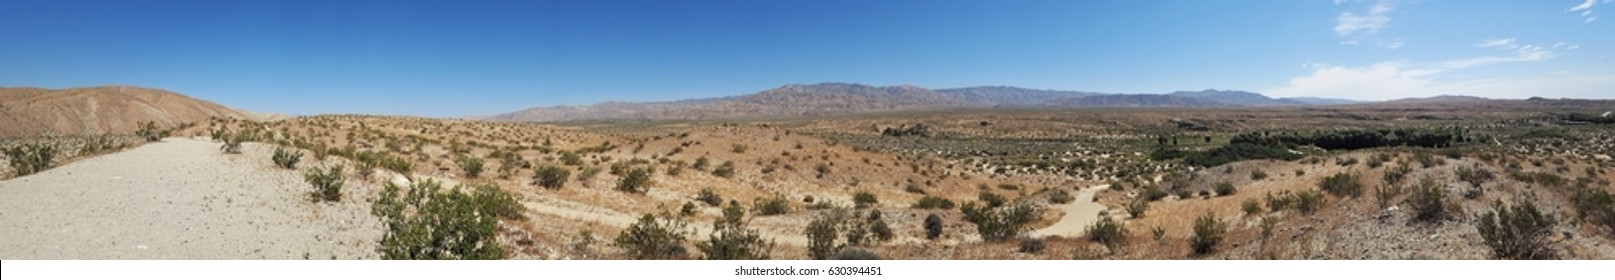 Panoramic of Coachella Valley desert near Palm Springs, California